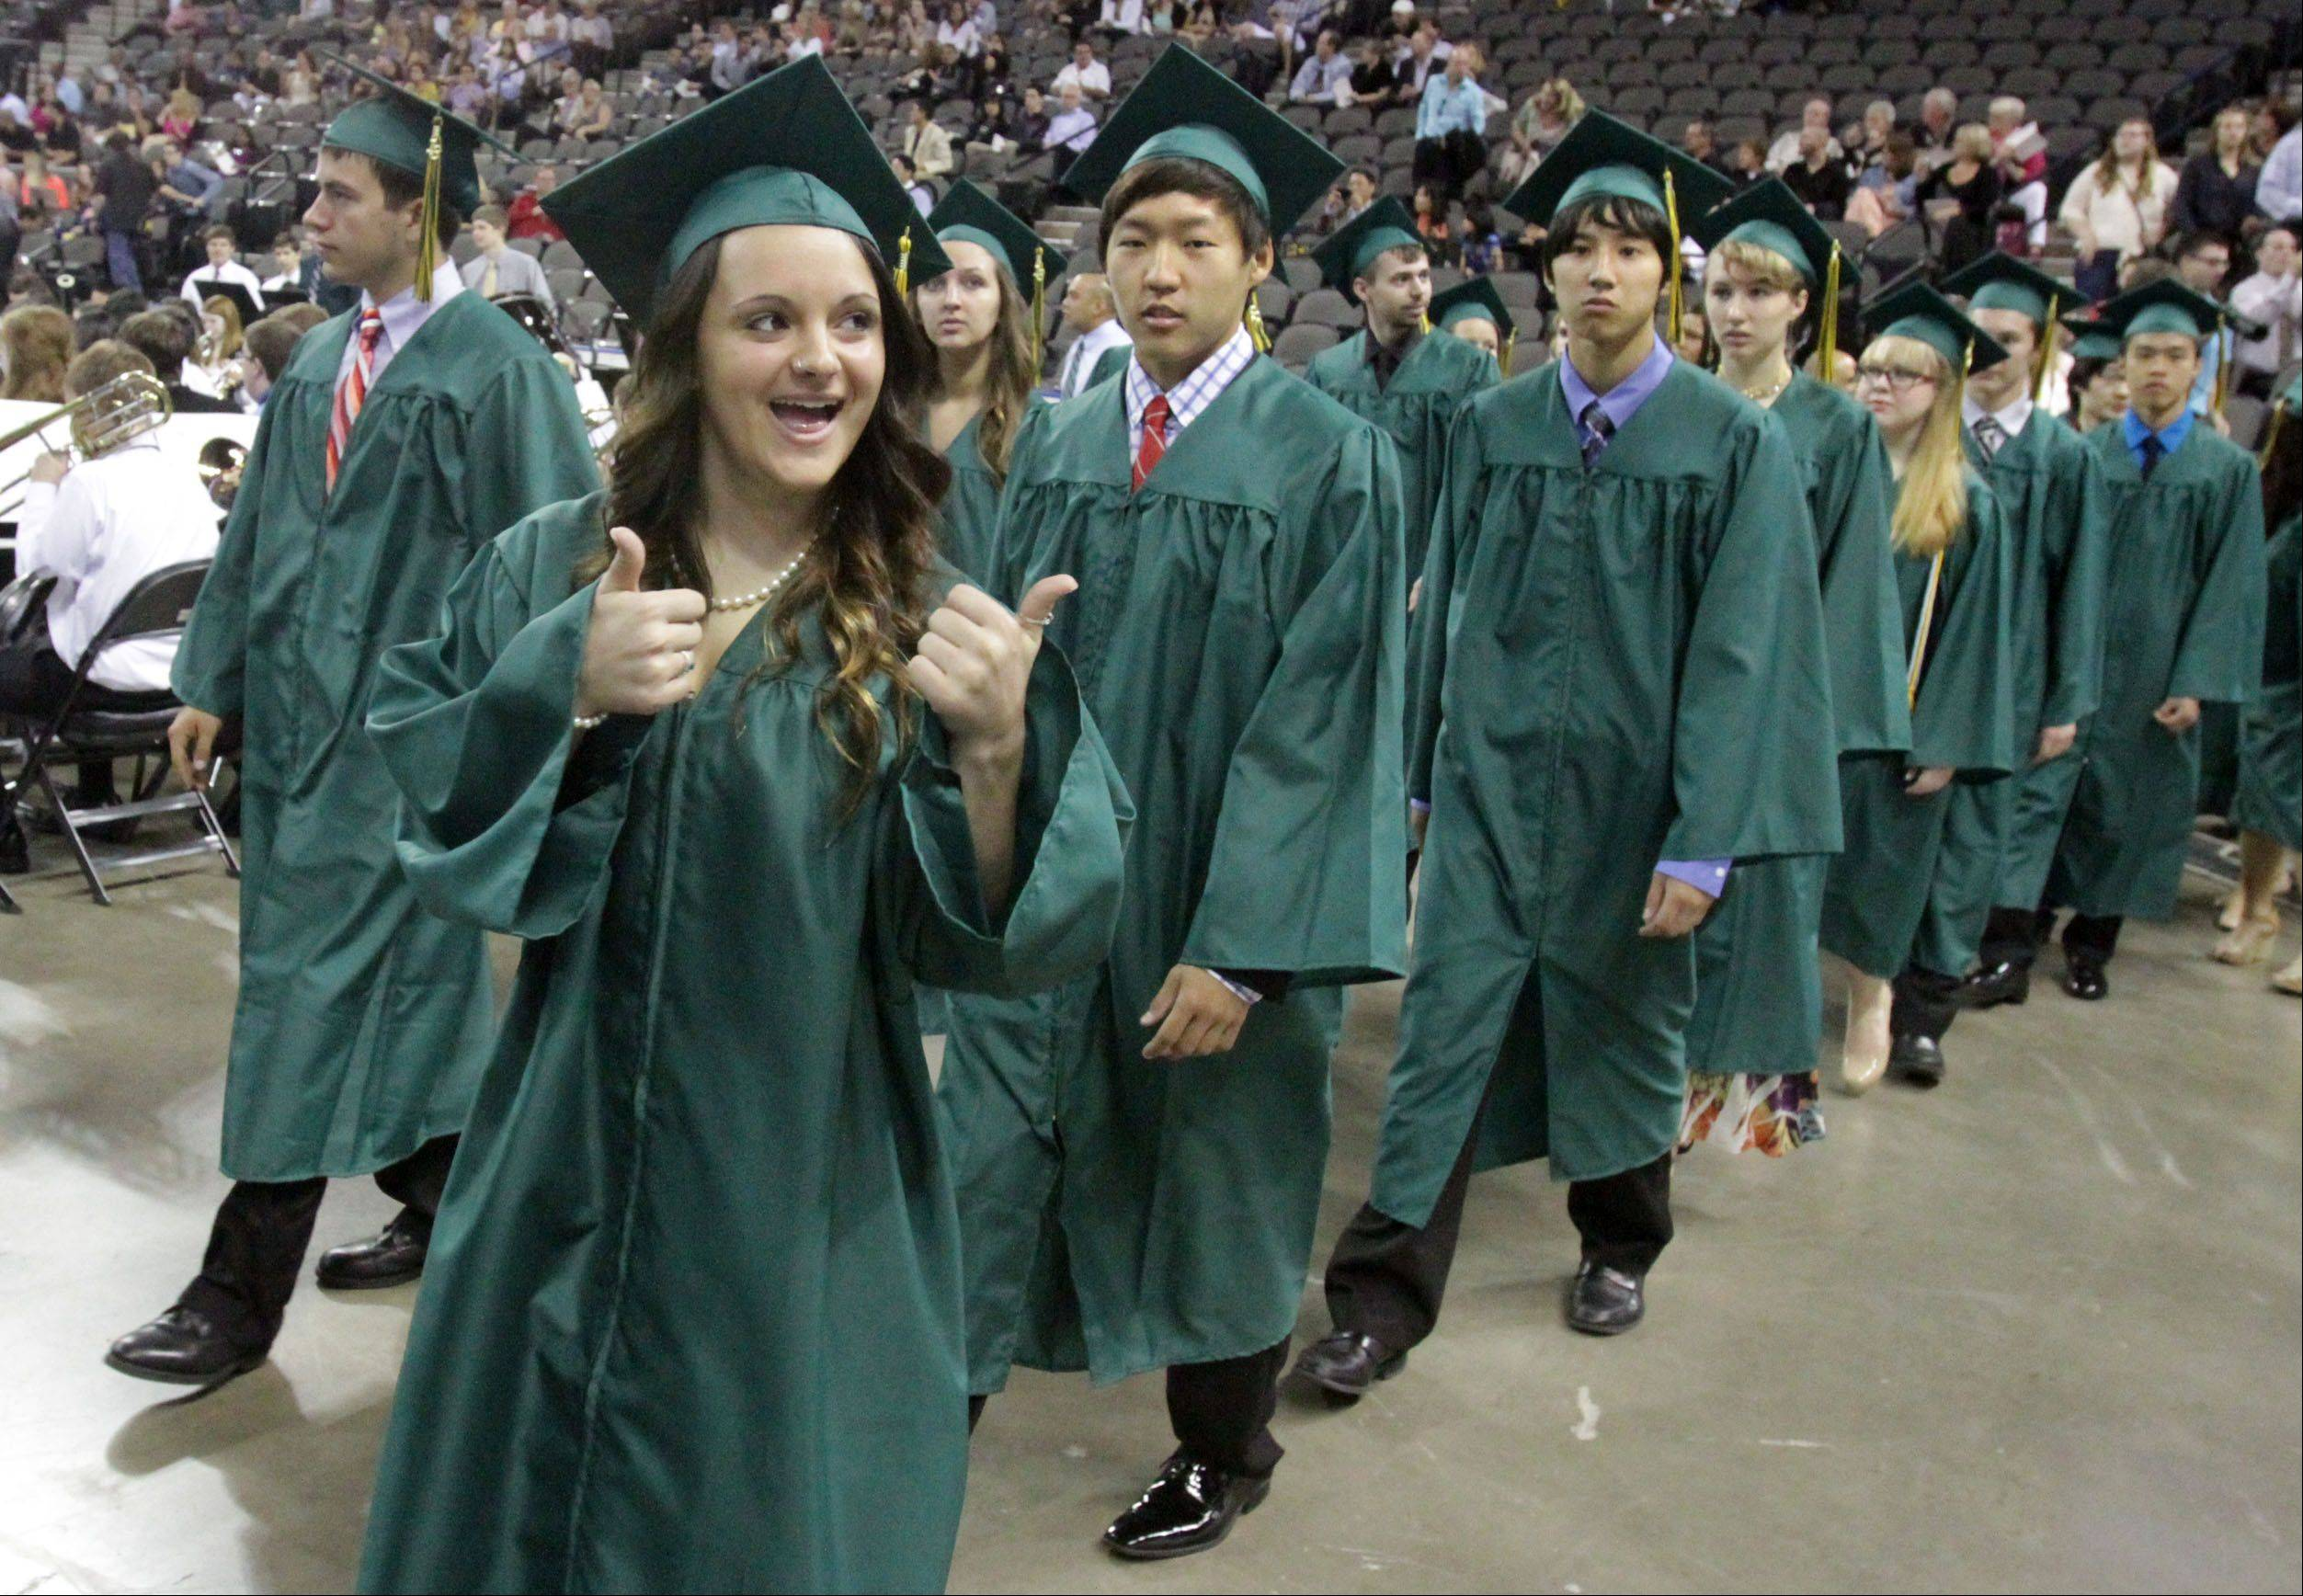 Christina Nowicki gives the thumbs-up to her family as she marches with graduates into the Sears Centre for Fremd High School's commencement ceremony on Sunday.